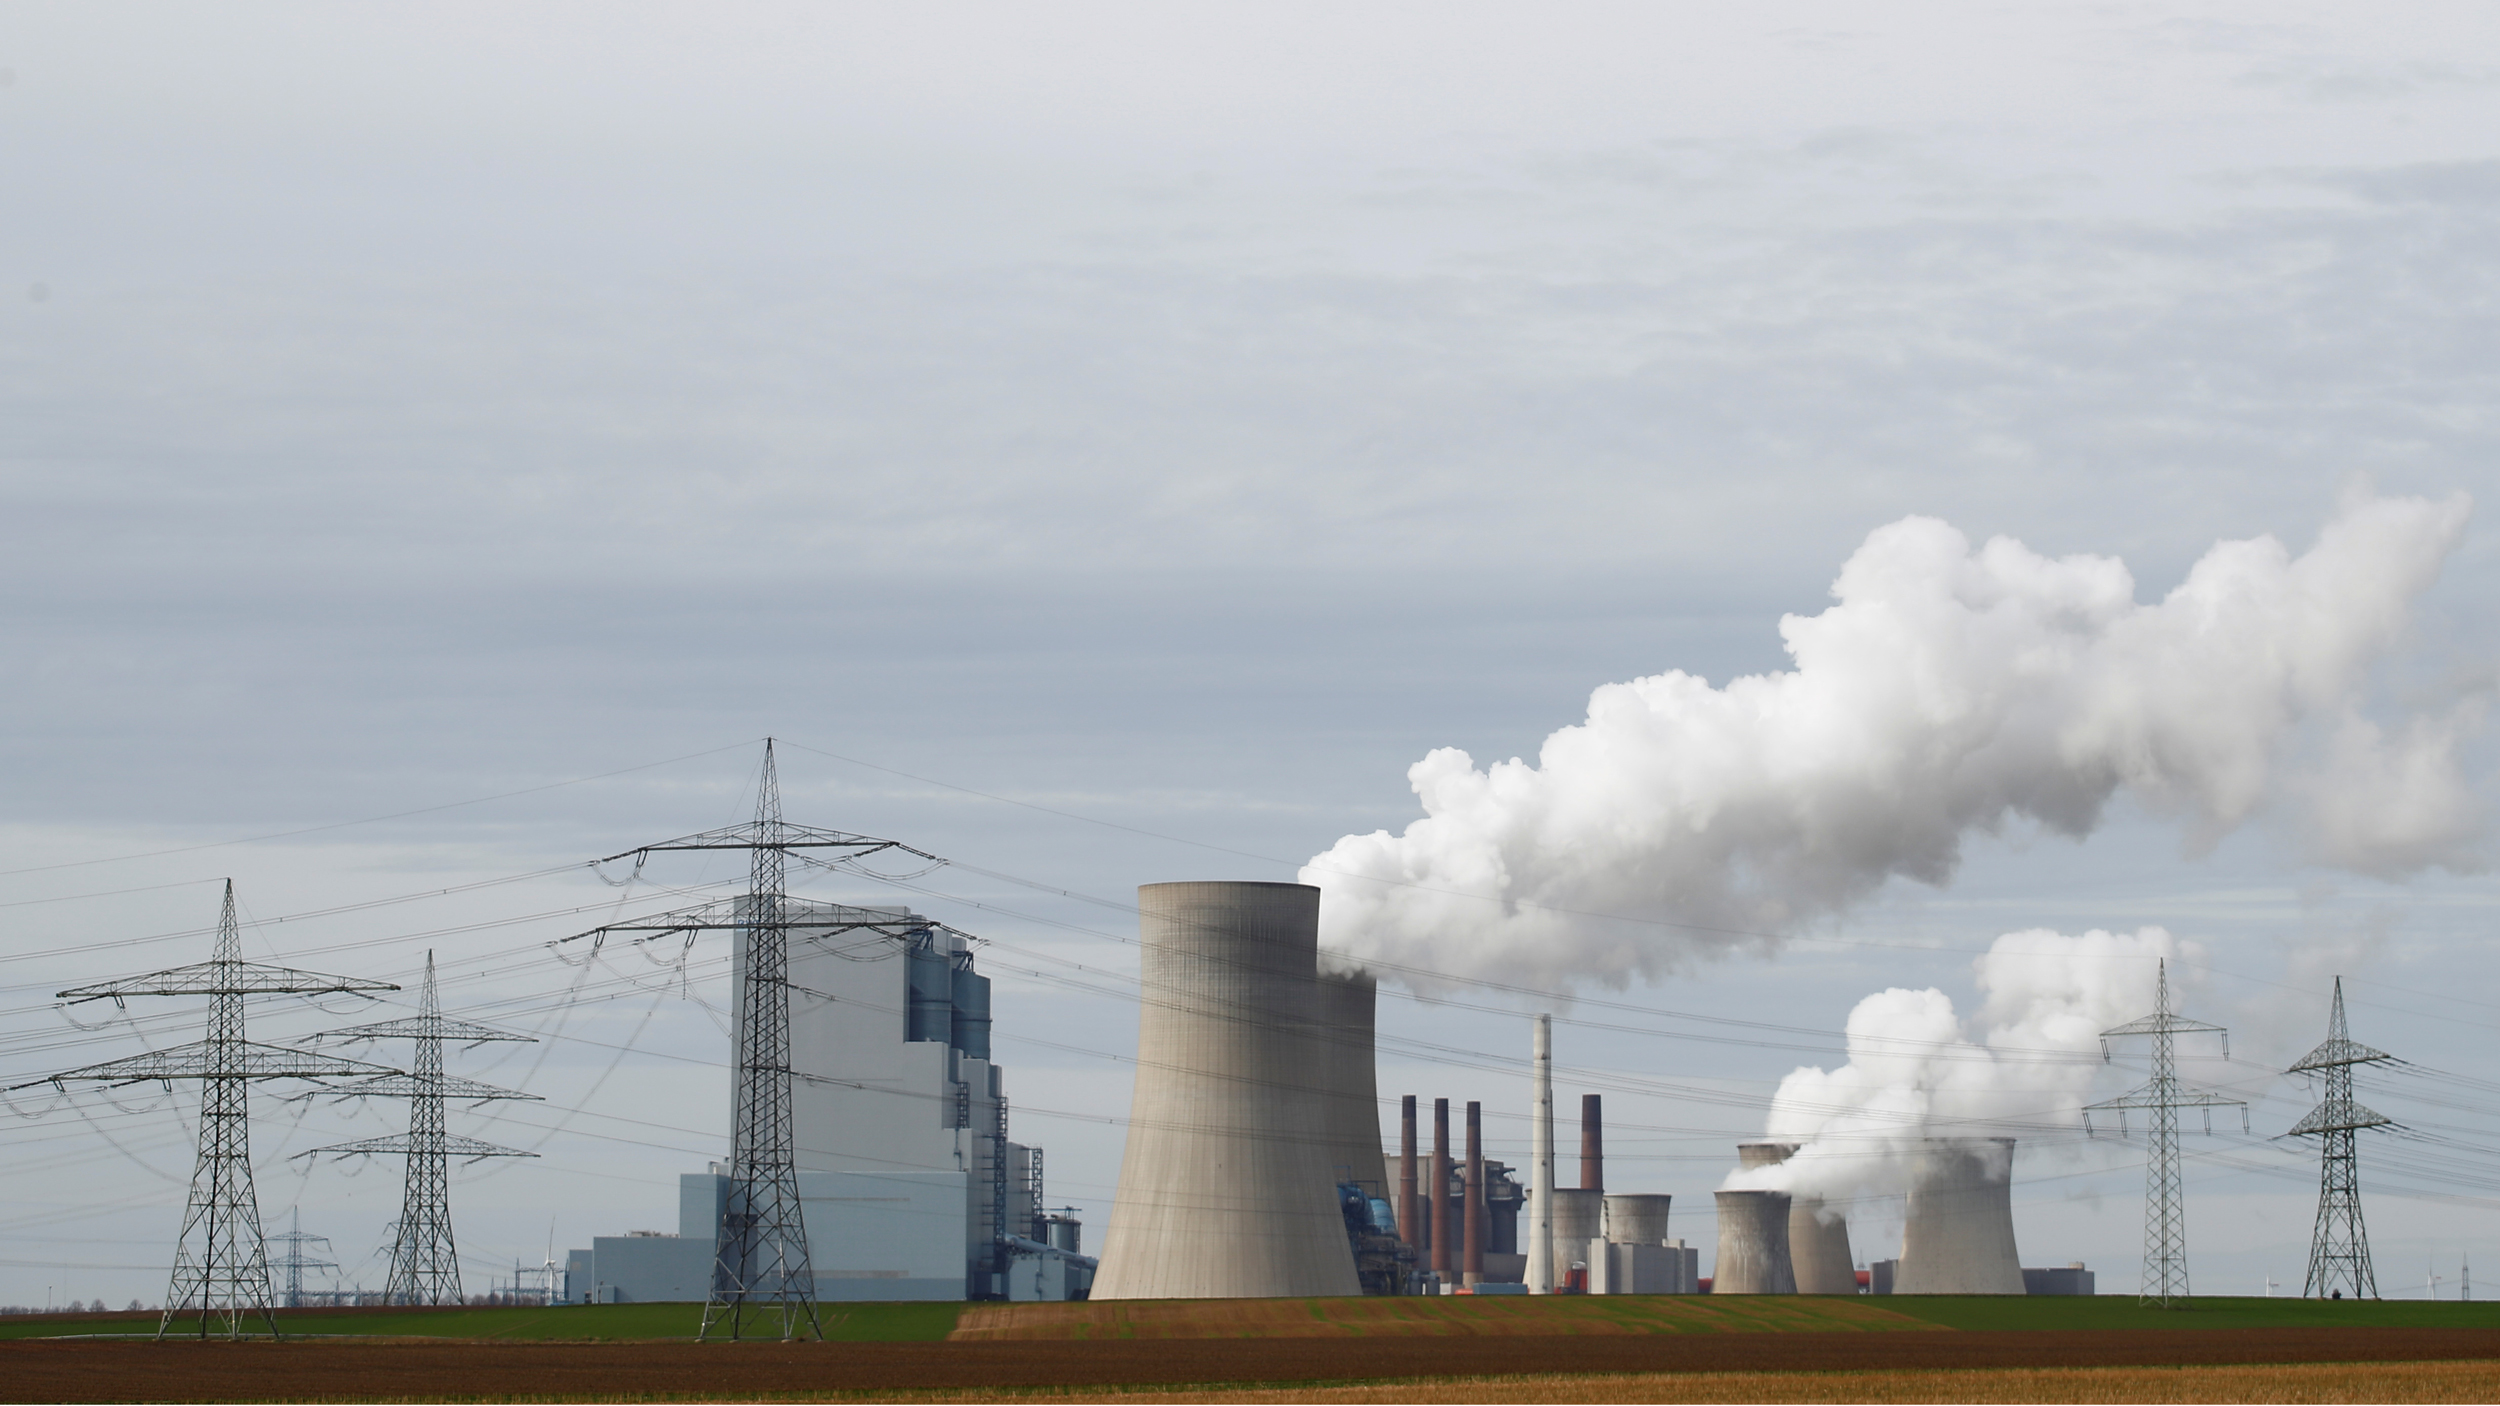 Steam rises from a power plant